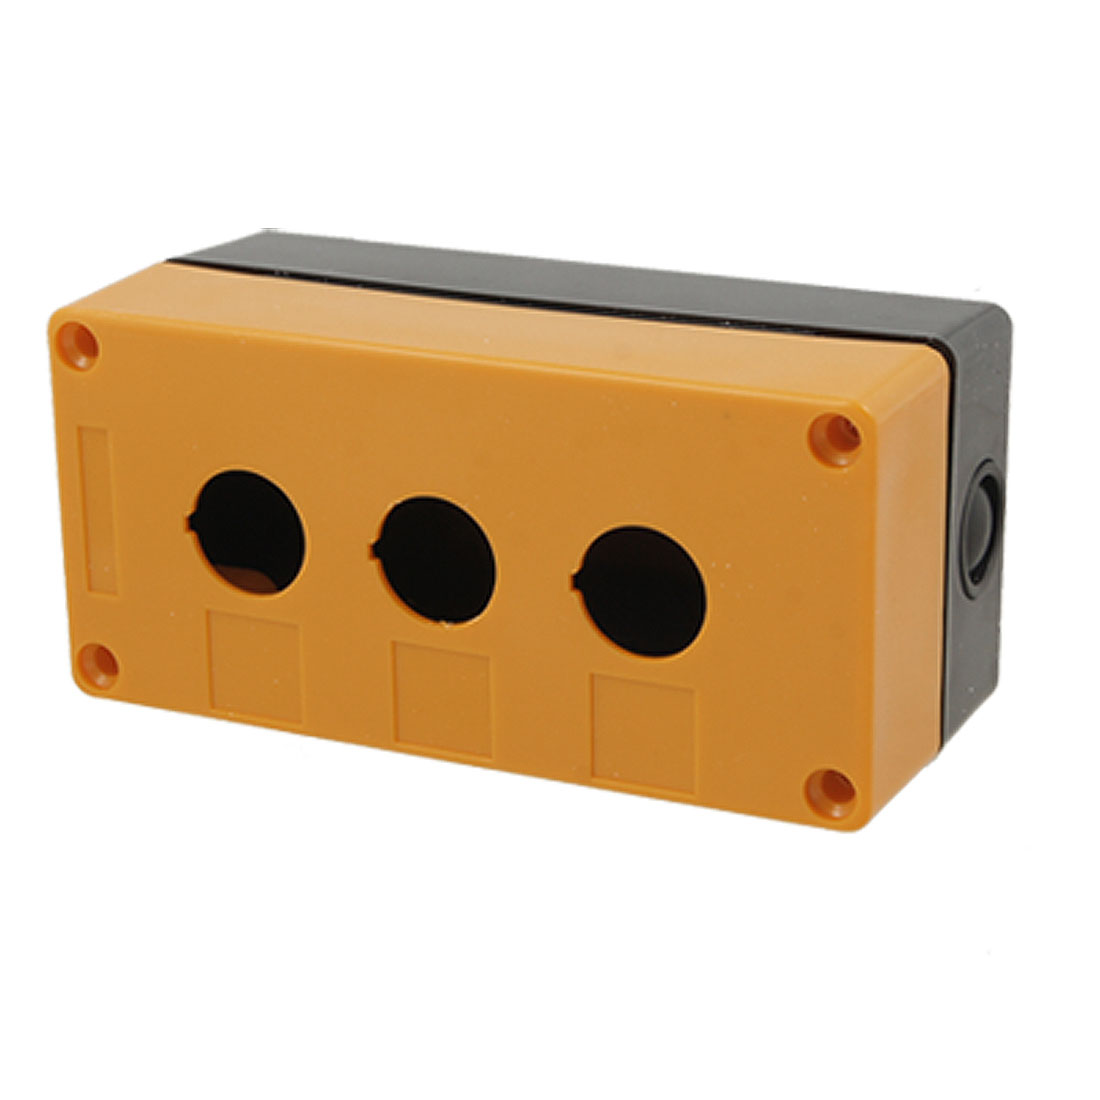 Control Station 3 Switch 22mm Push Button Protector Box